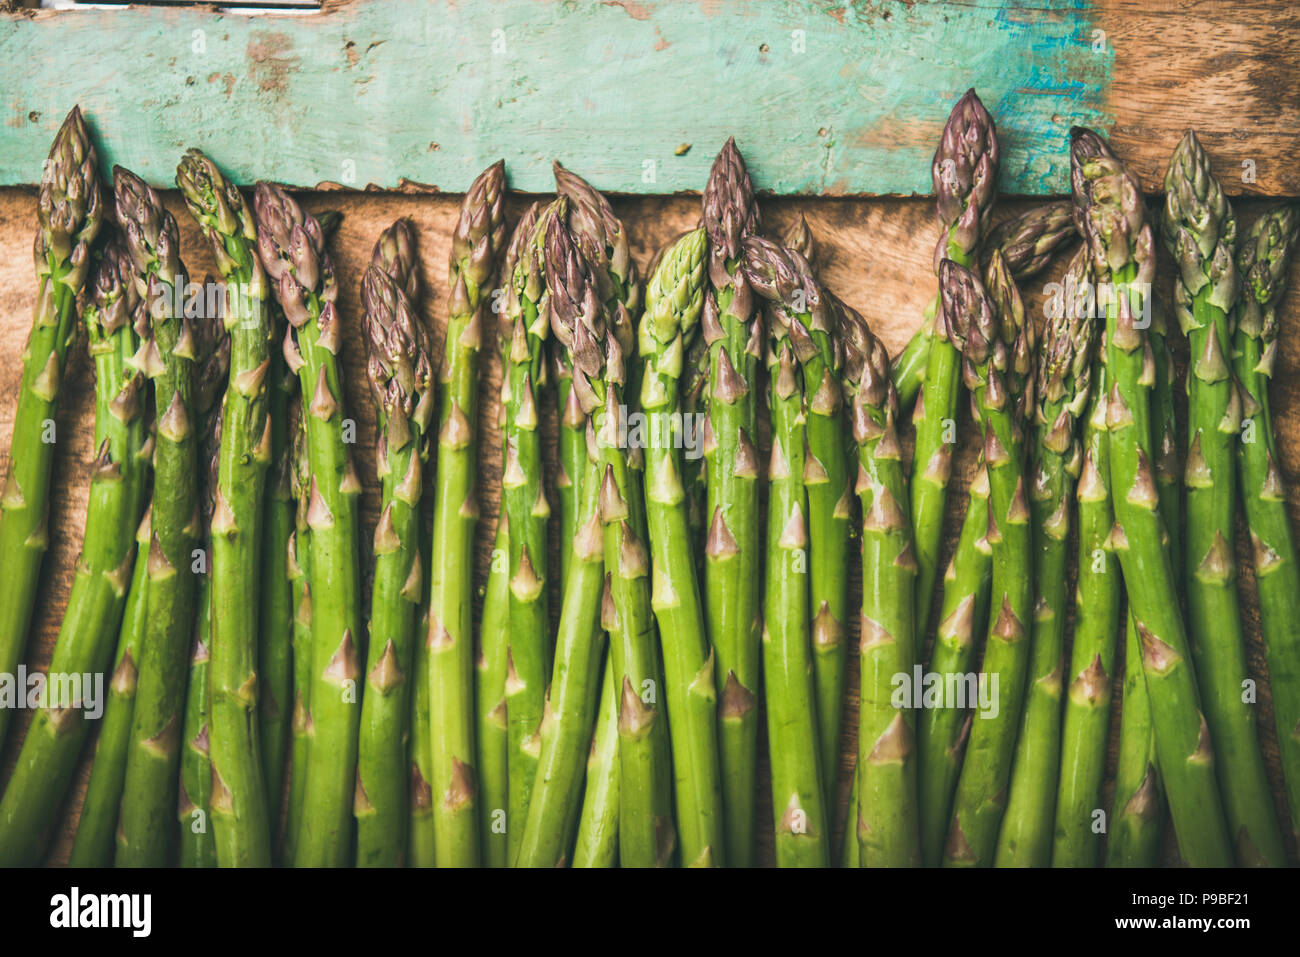 Raw uncooked green asparagus over rustic wooden tray background, close-up - Stock Image